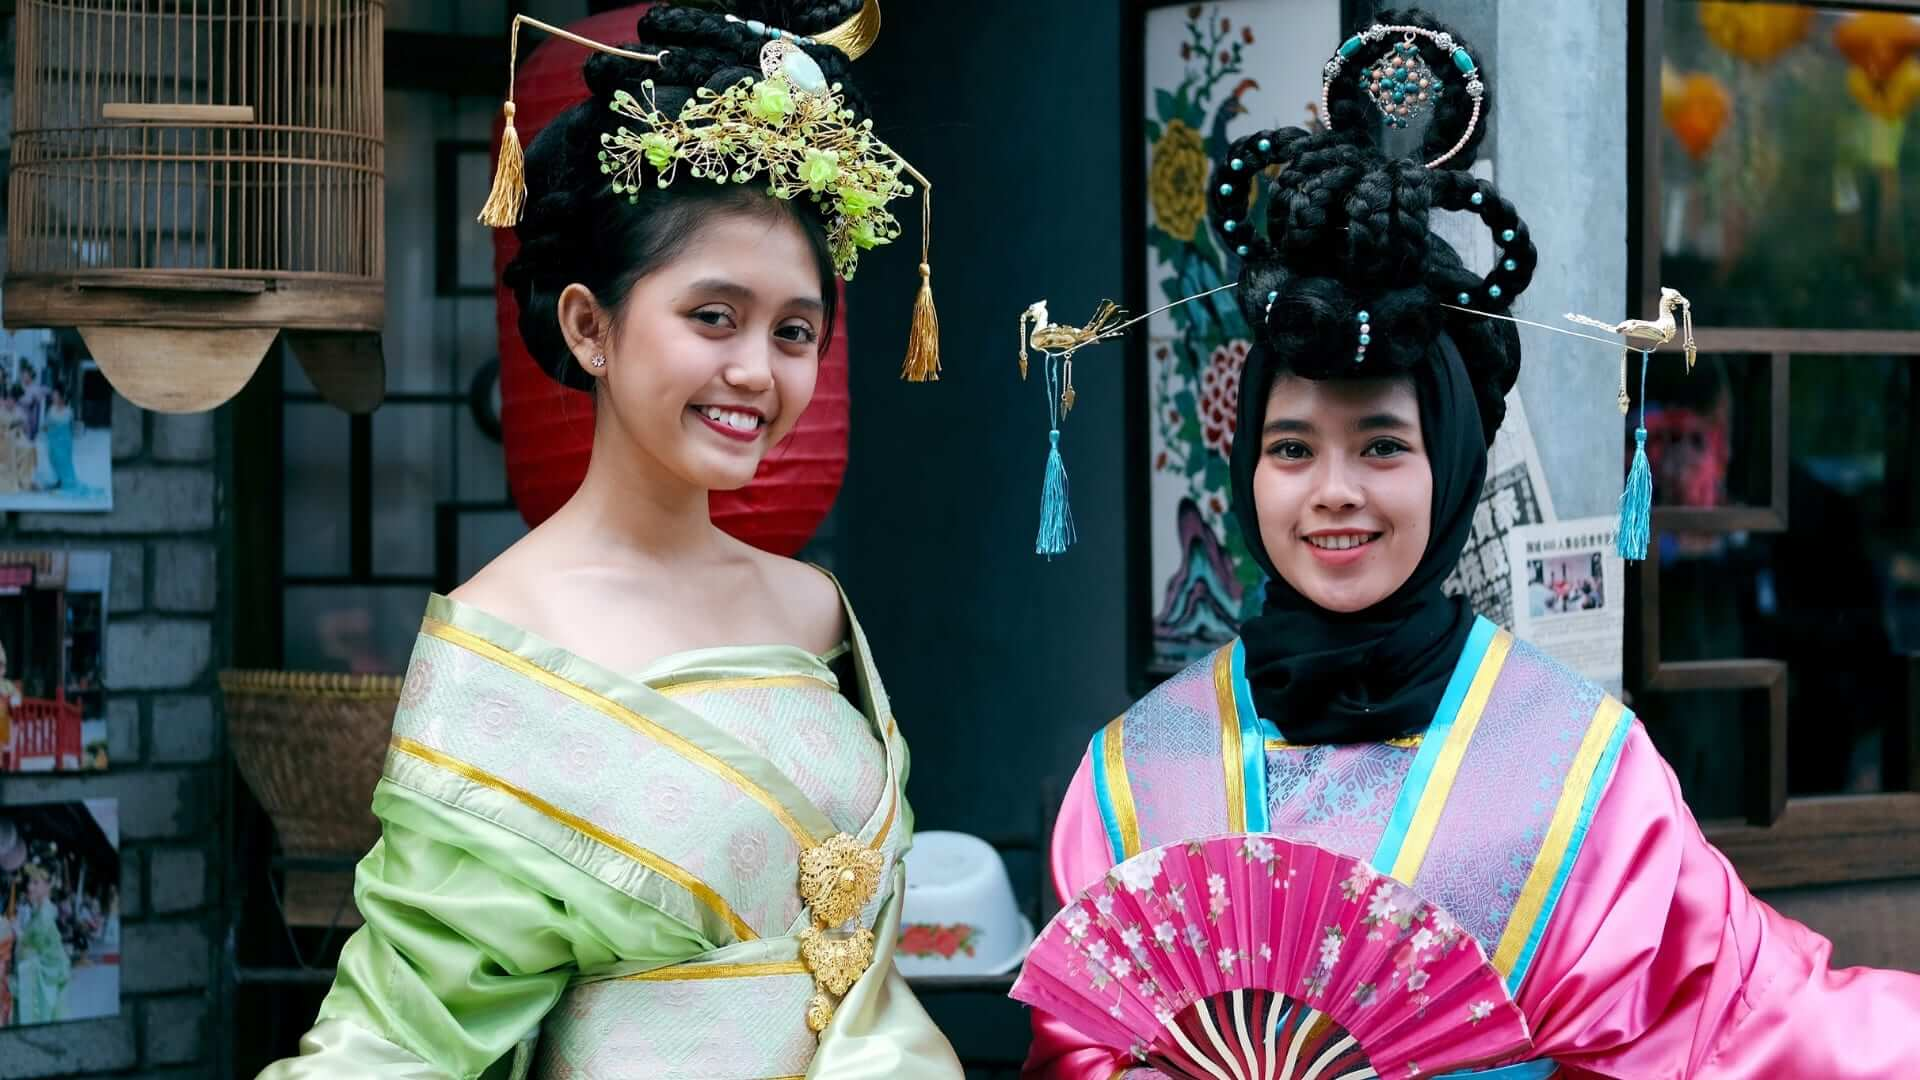 Two Chinese women in traditional Chinese clothes are smiling in China.